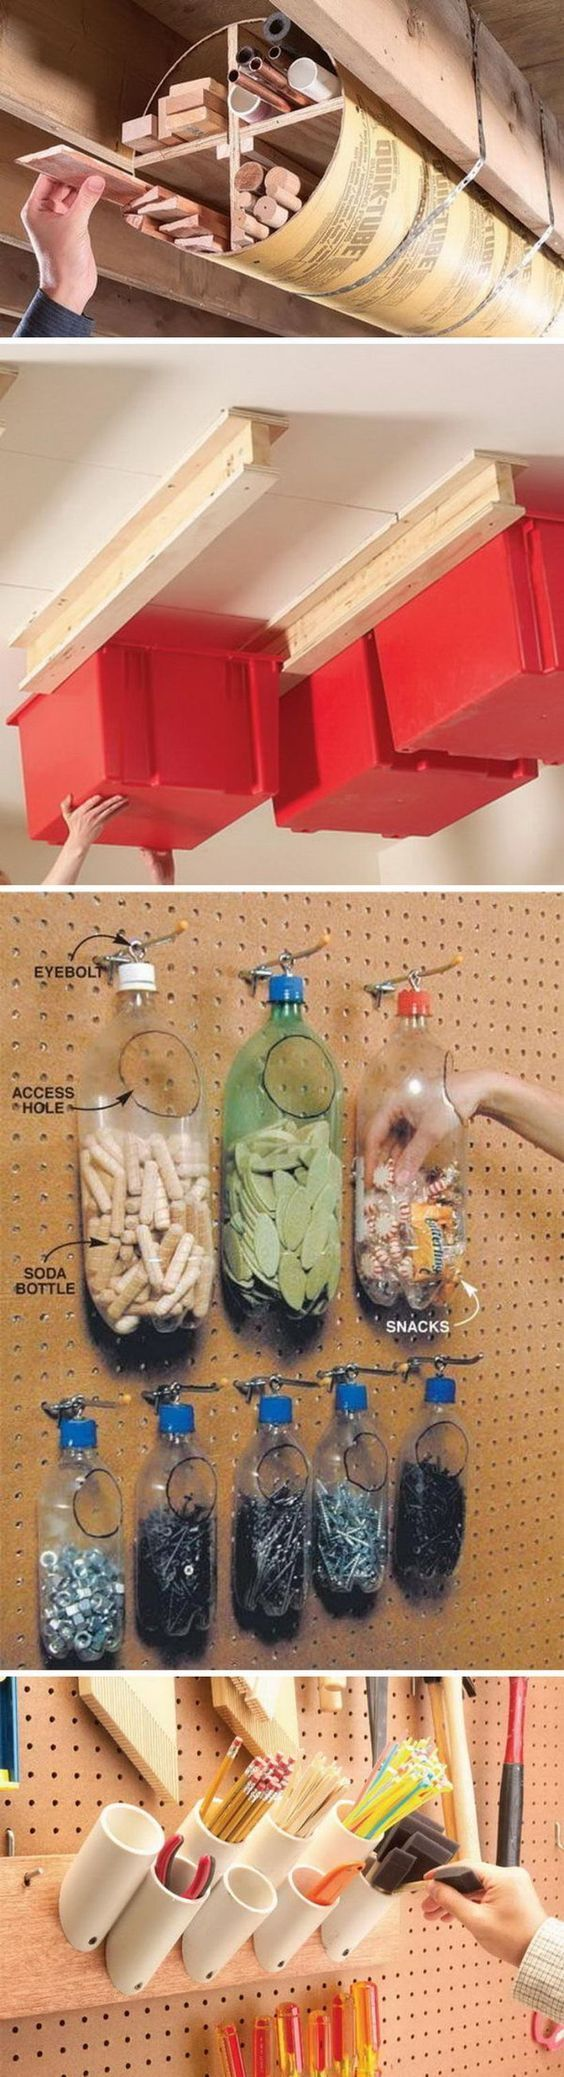 Creative Hacks Tips For Garage Storage And Organizations 142